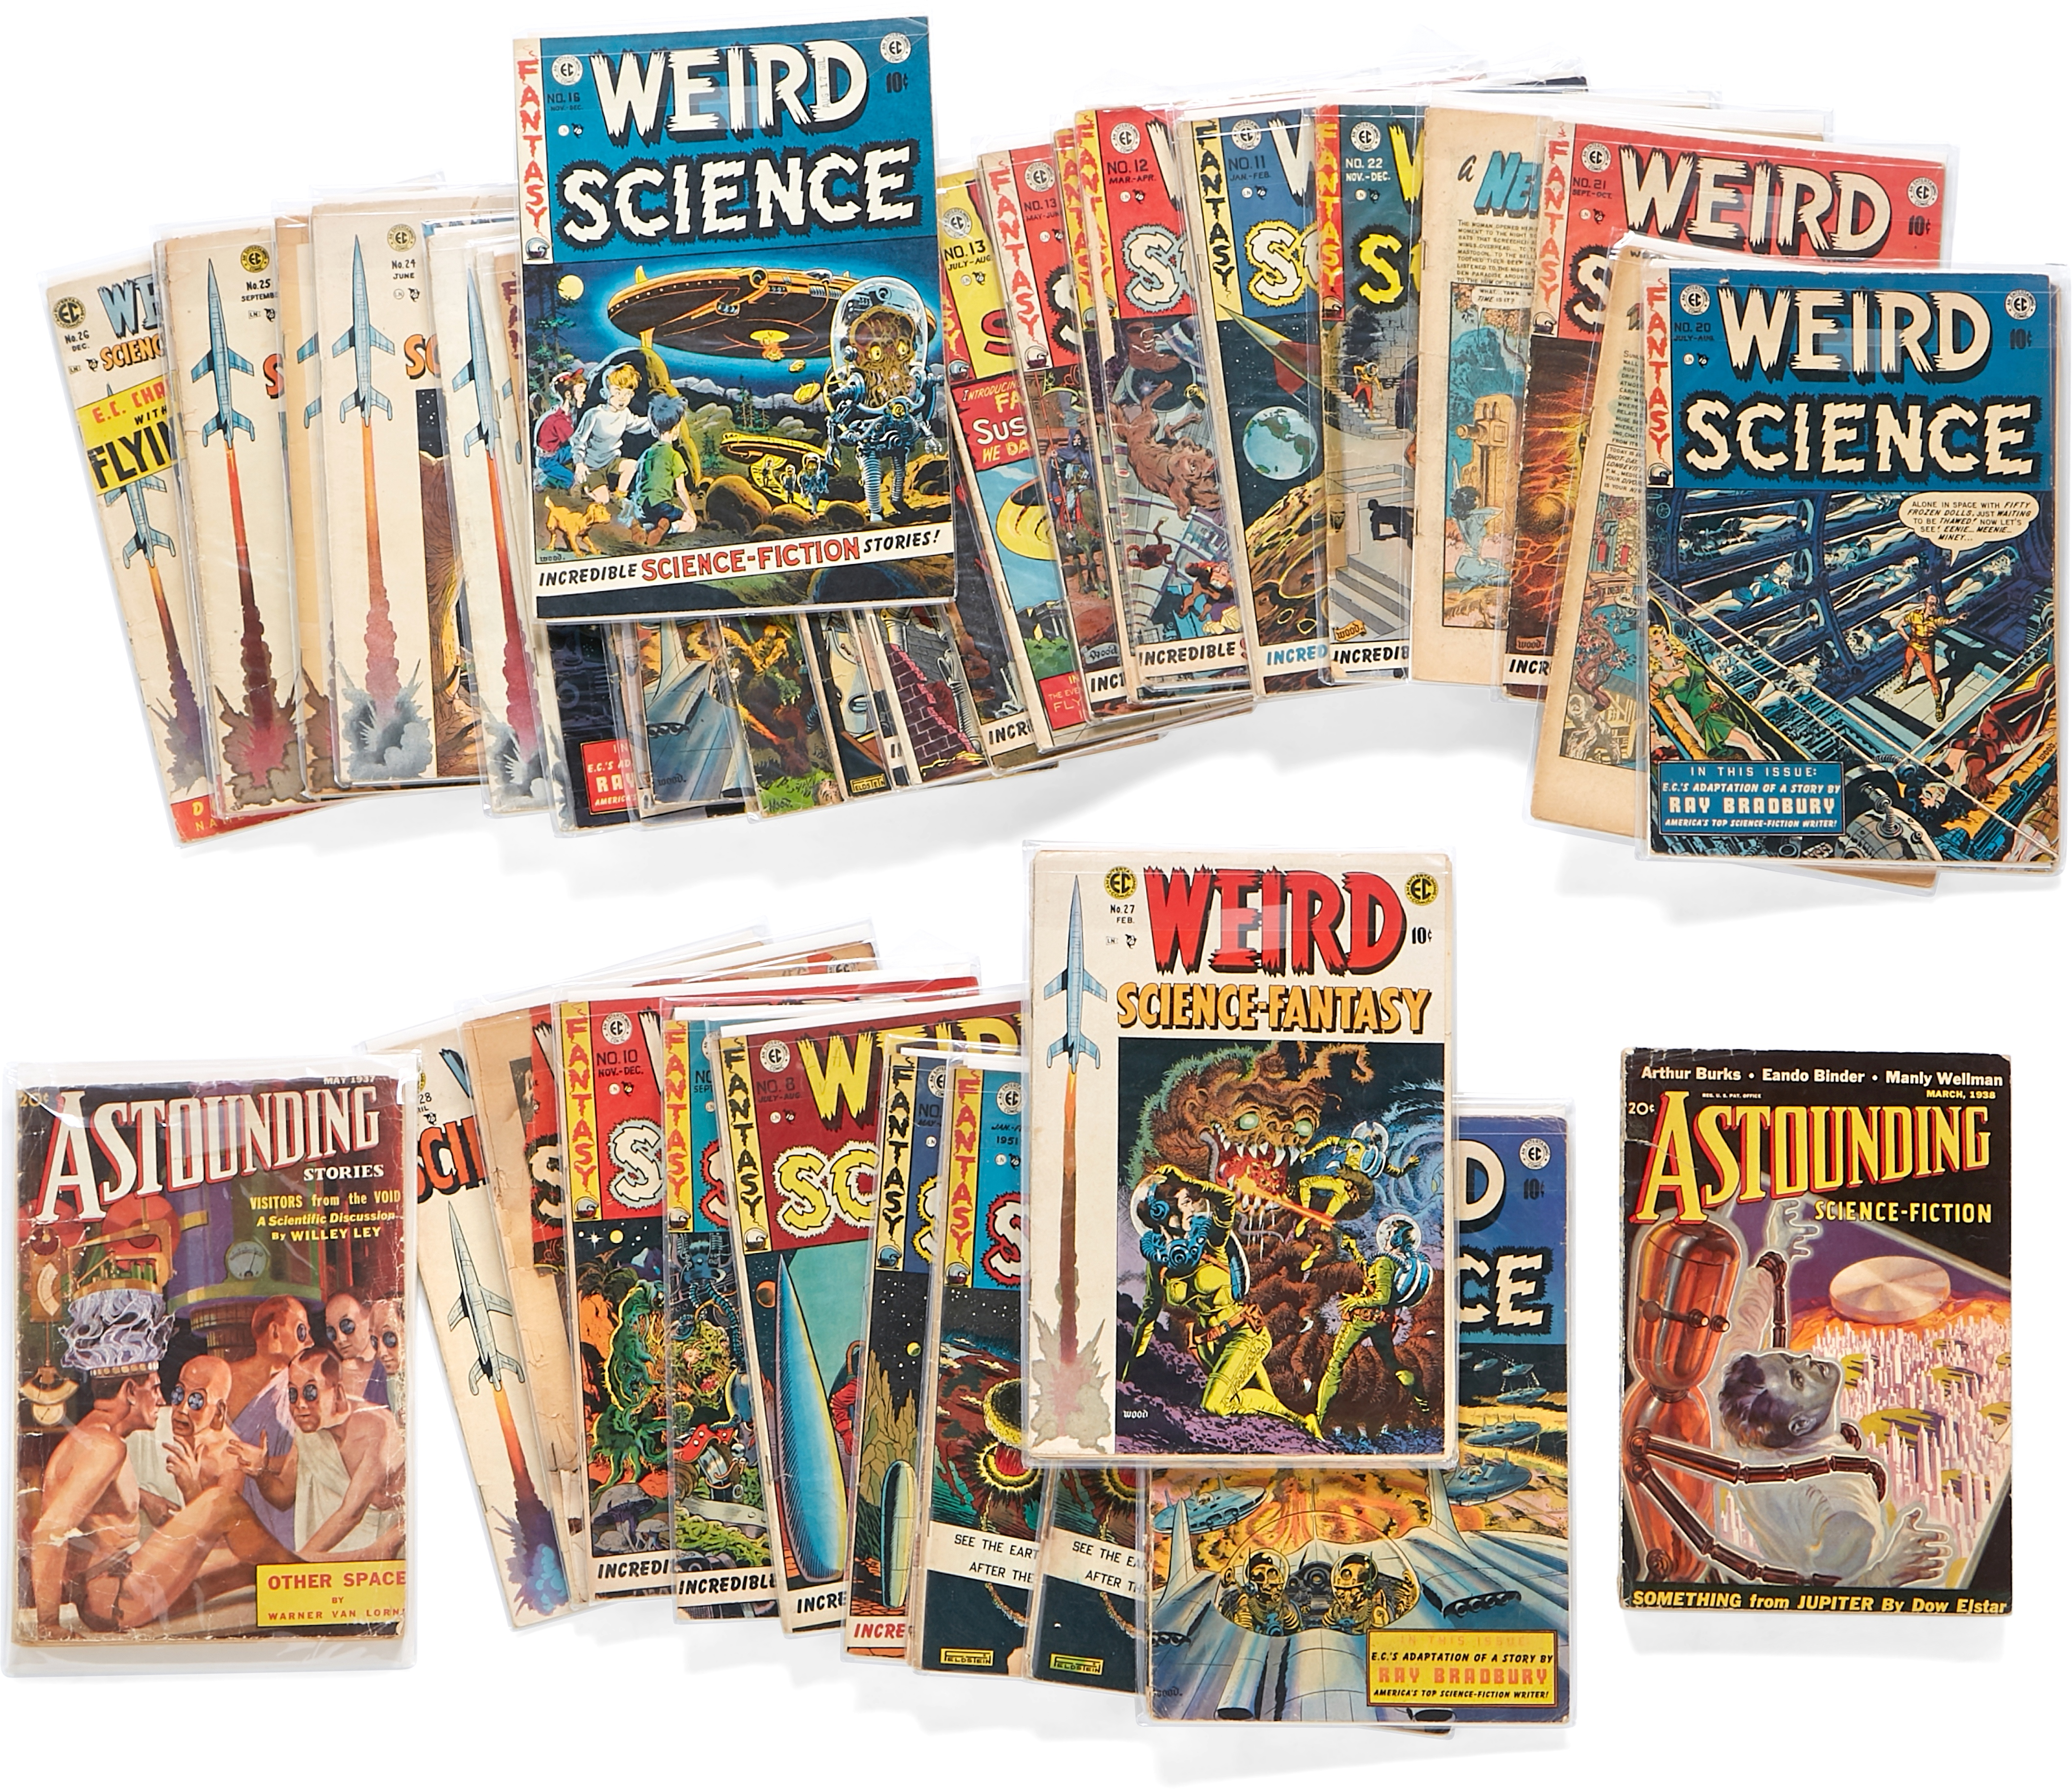 Lot 307 - A JERRY GARCIA GROUP OF 41 WEIRD SCIENCE & WEIRD SCIENCE-FANTASY EC COMICS AND 4 ISSUES OF ASTOUN...